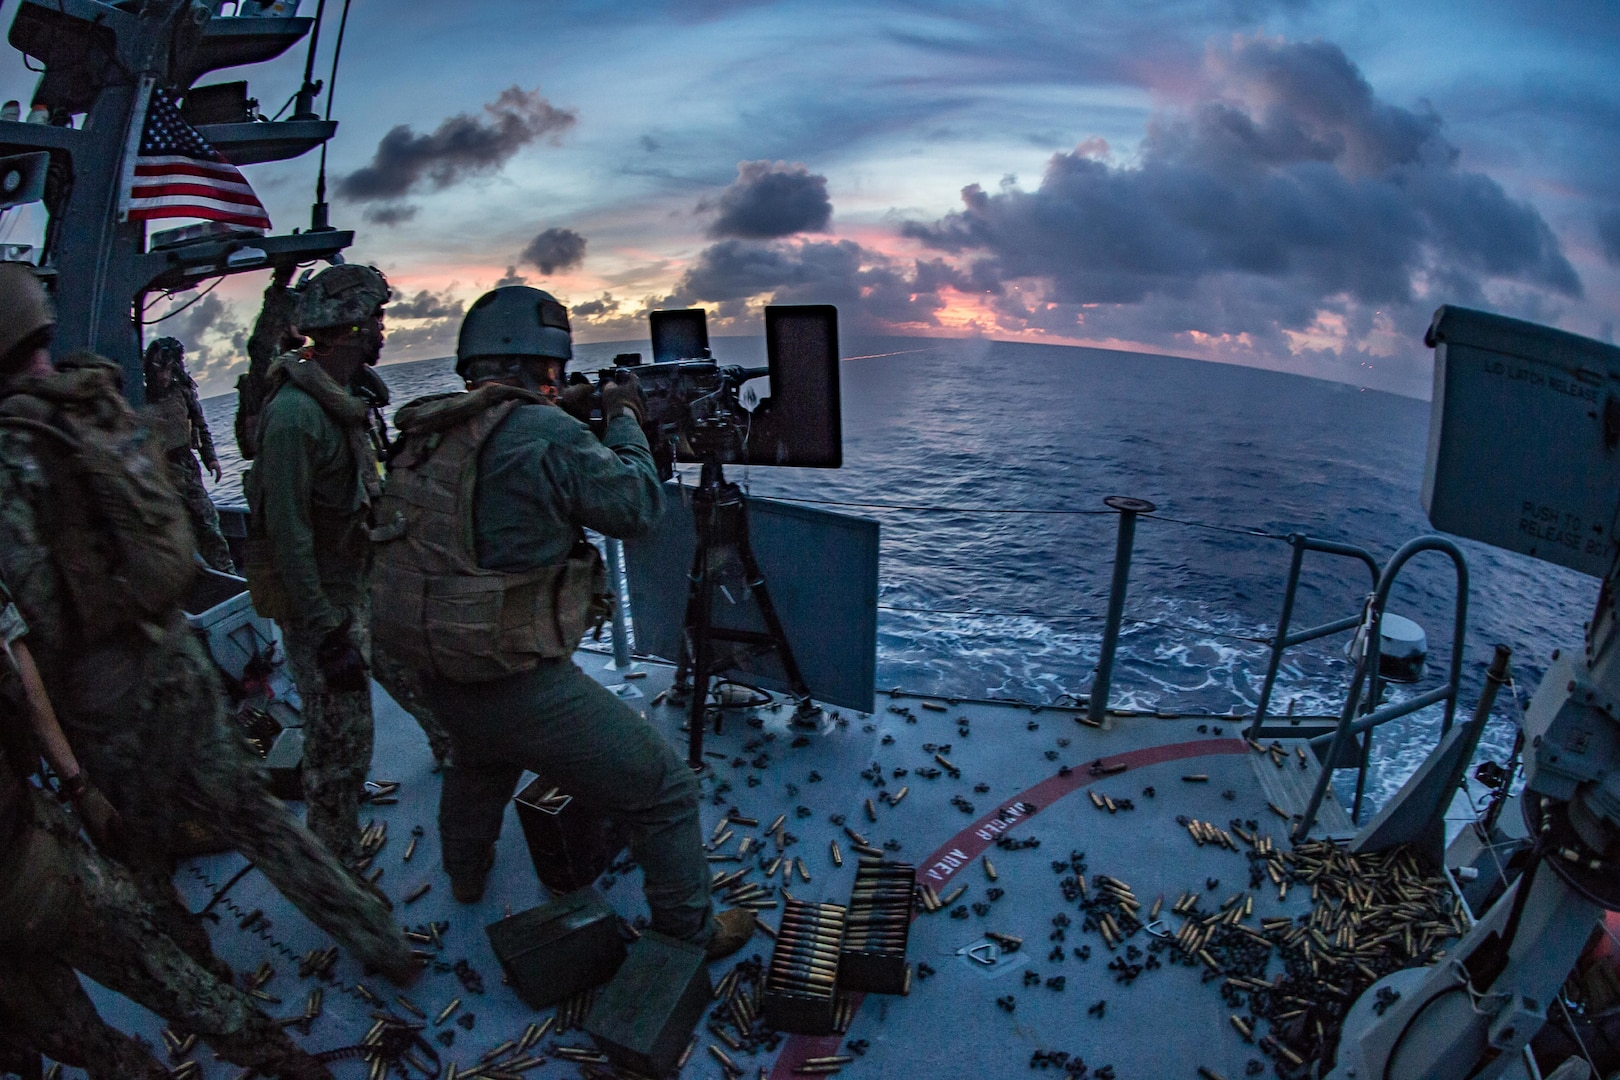 31st MEU demonstrates non-traditional use of expeditionary platforms during joint patrol